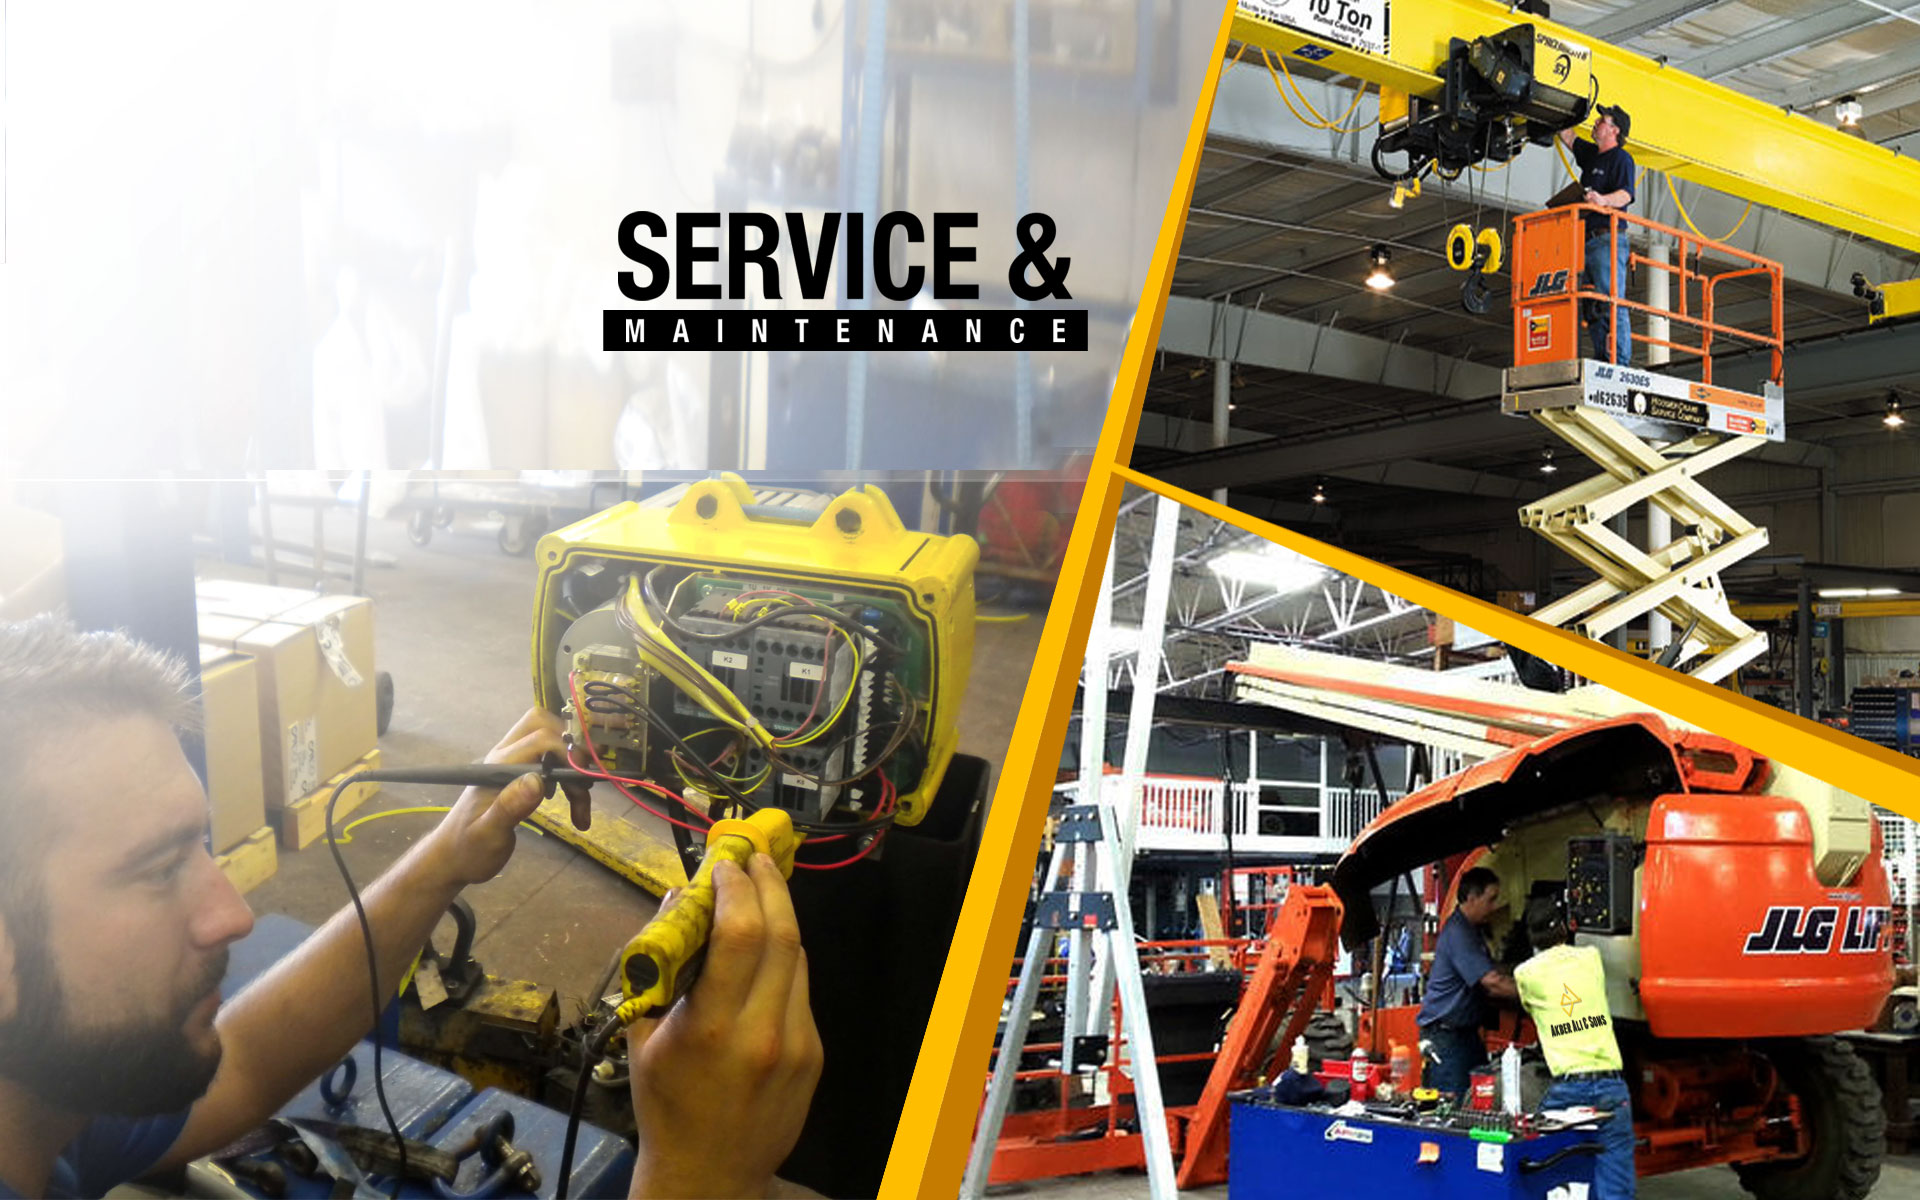 Service and repair of heavy equipment